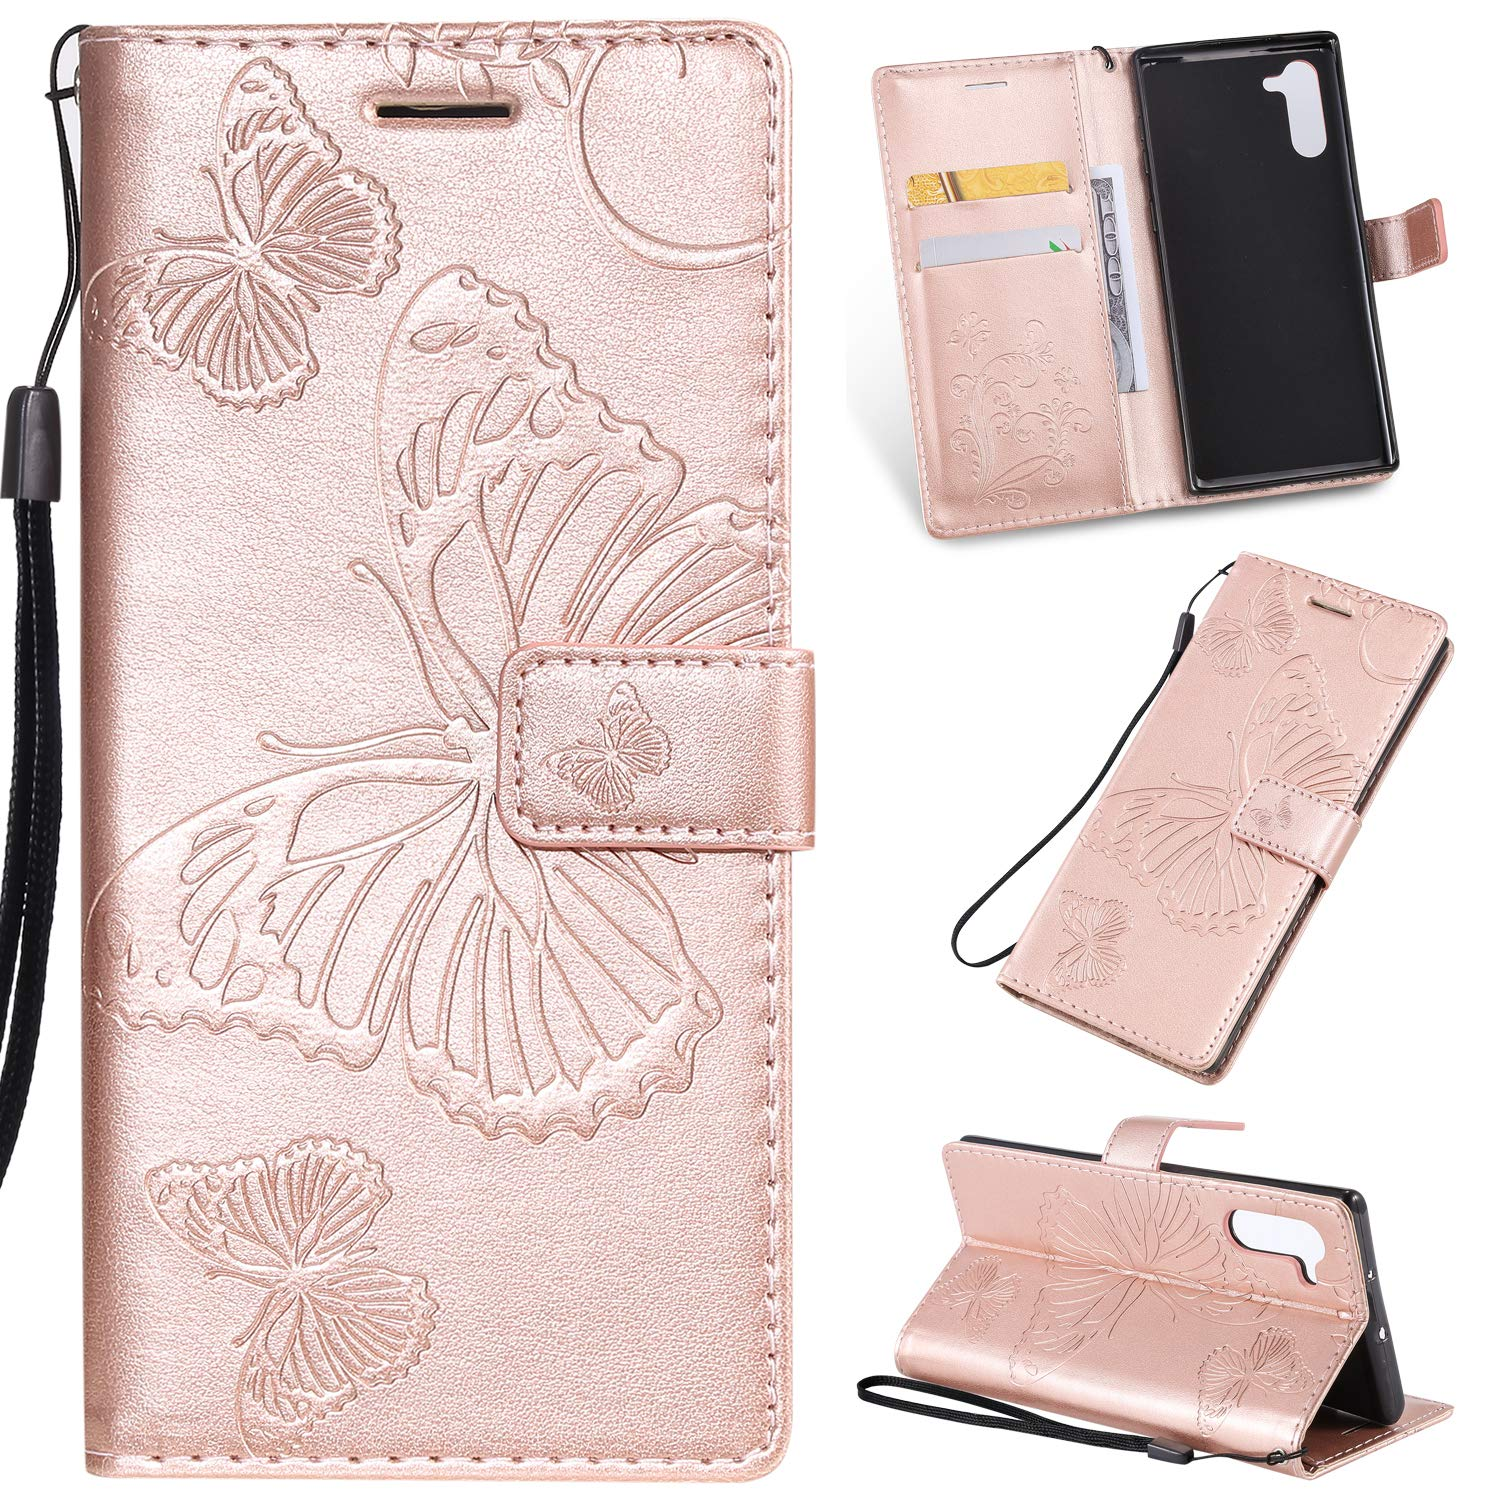 Tznzxm Galaxy Note 10 Case, Luxury 3D Embossed Butterfly PU Leather Magnetic Wallet Protective Flip Kickstand Cover with Credit Card Slots and Wrist Wallet for Samsung Galaxy Note 10 Rose Gold by Tznzxm